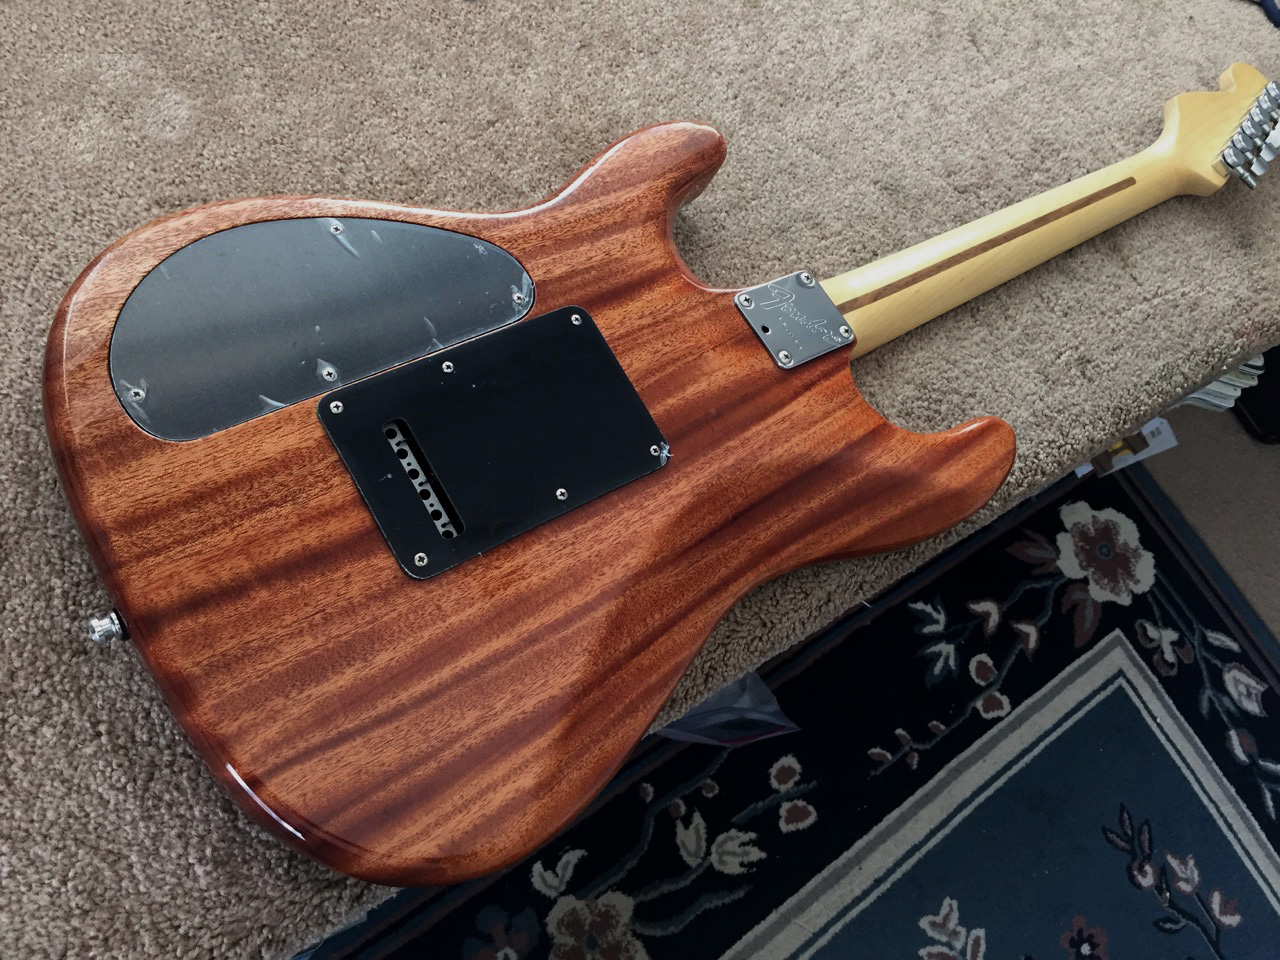 Xhefris Guitars Customized Stratocaster Plus 2 Pickup Guitar Wiring 1993 2016 Ultra Custom Build This Is A Warmoth Mahogany Chamber Body Mated To New Old Stock Ebony Fender Neck It Has Highly Flamed Maple